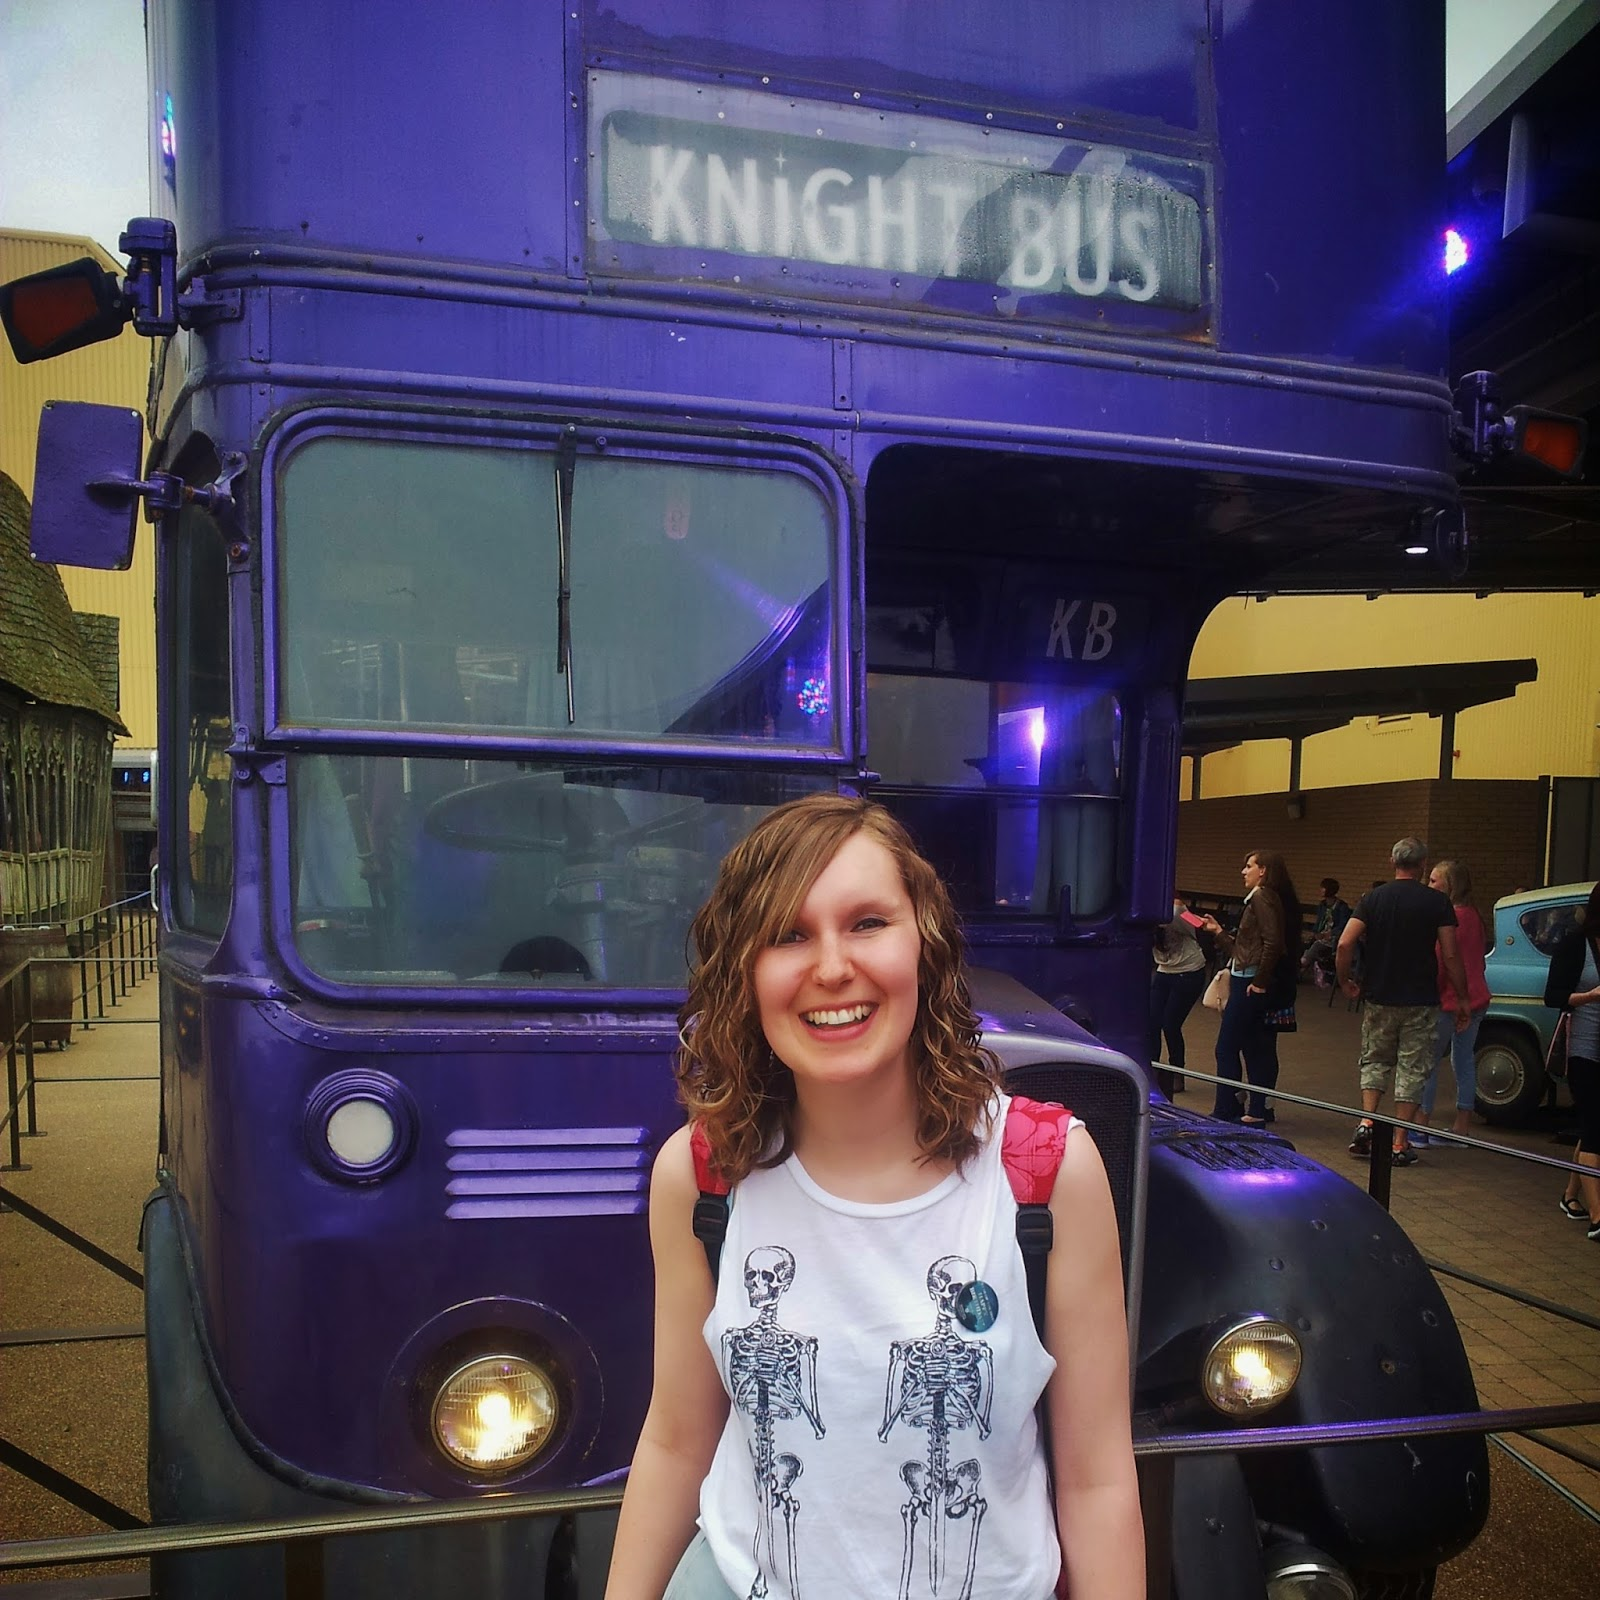 Stood in front of the Knight Bus